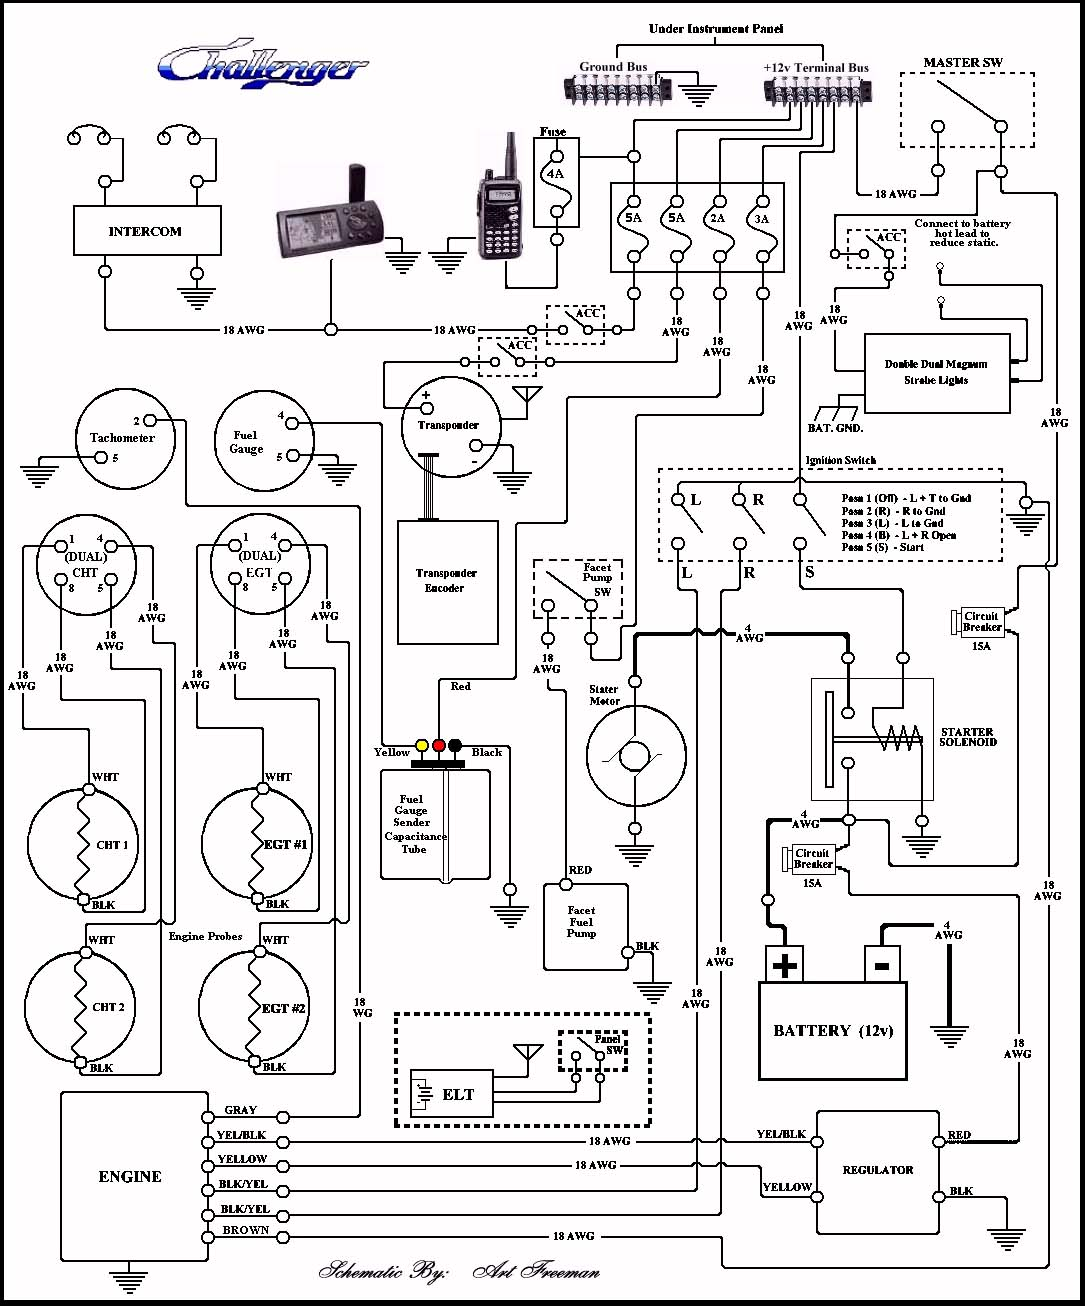 Schem_Analog basic wiring of fuselage, instruments and power source aircraft intercom wiring diagram at eliteediting.co